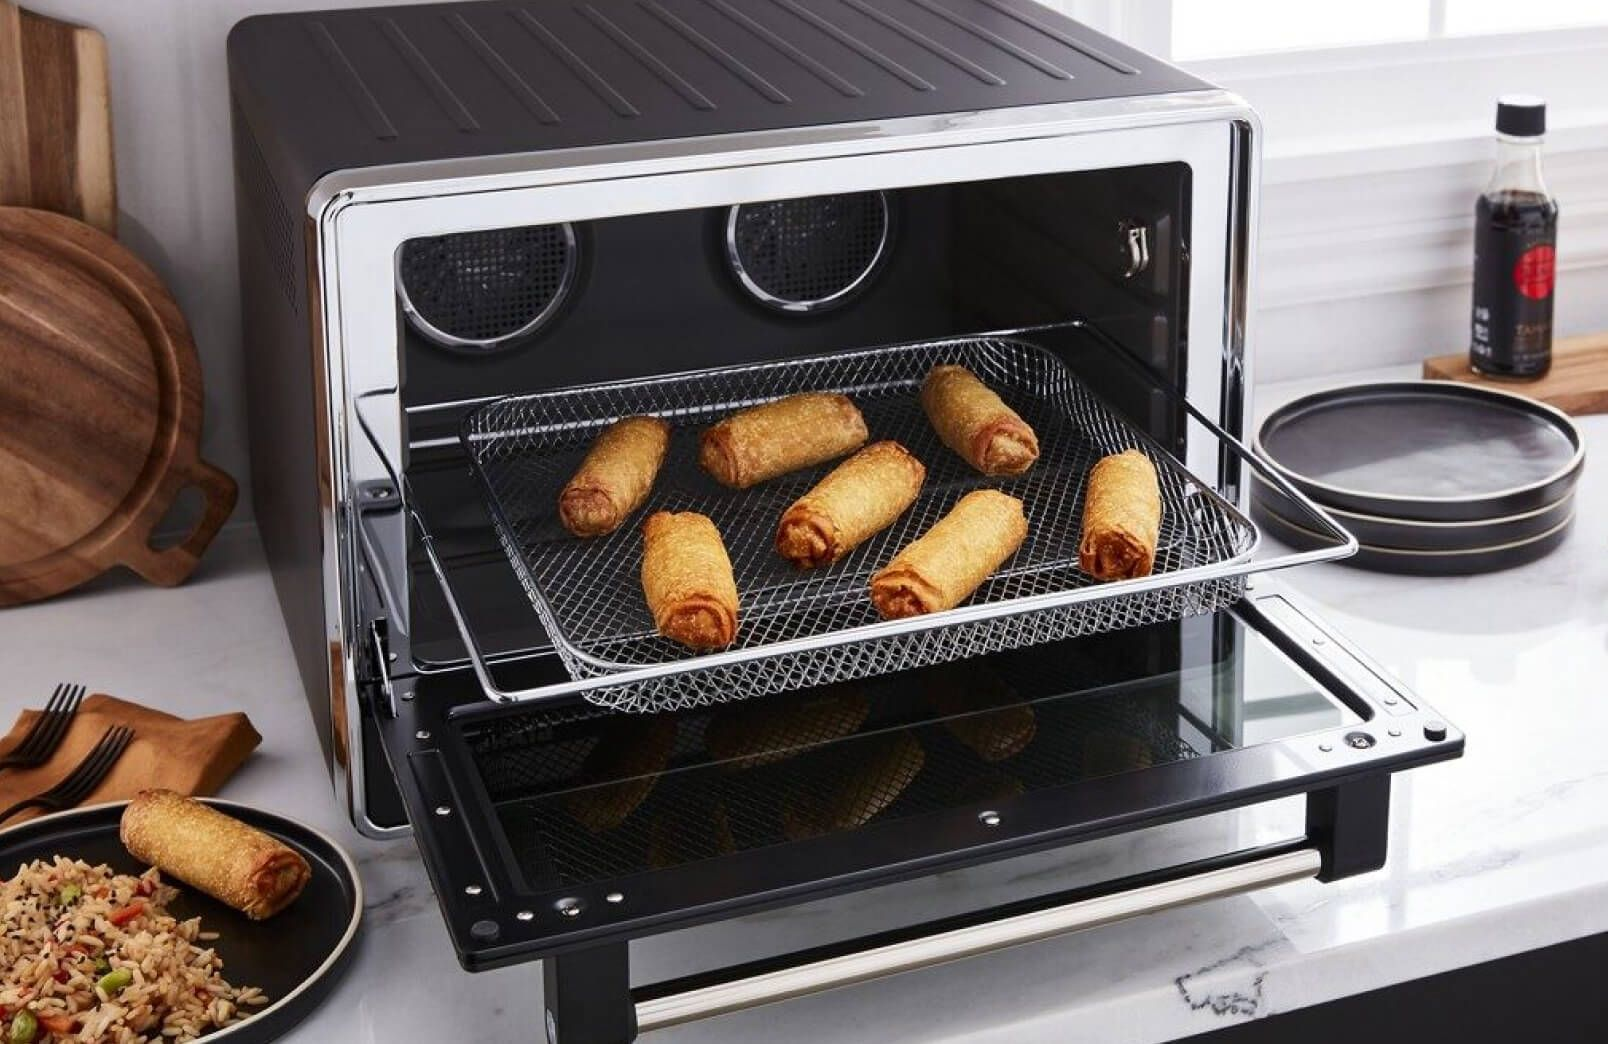 A KitchenAid® Dual Convection Countertop Oven with Air Fry frying egg rolls.